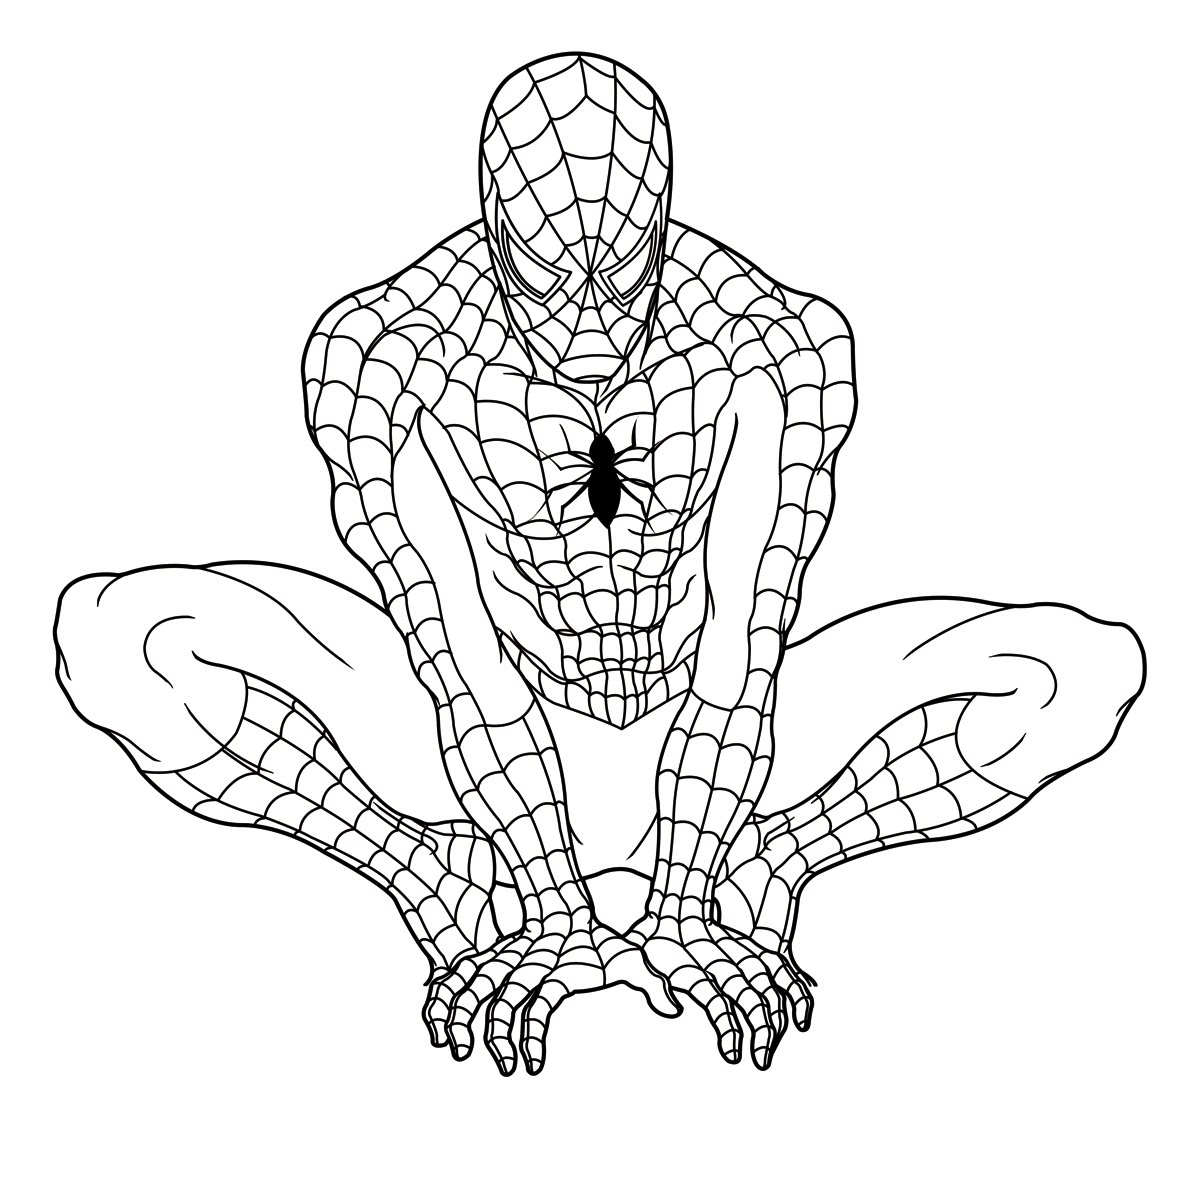 Free Printable Spiderman Coloring Pages for Kids Printable Of Innovative Ideas Hulk Coloring Pages Hulk Coloring Pages Get This Gallery